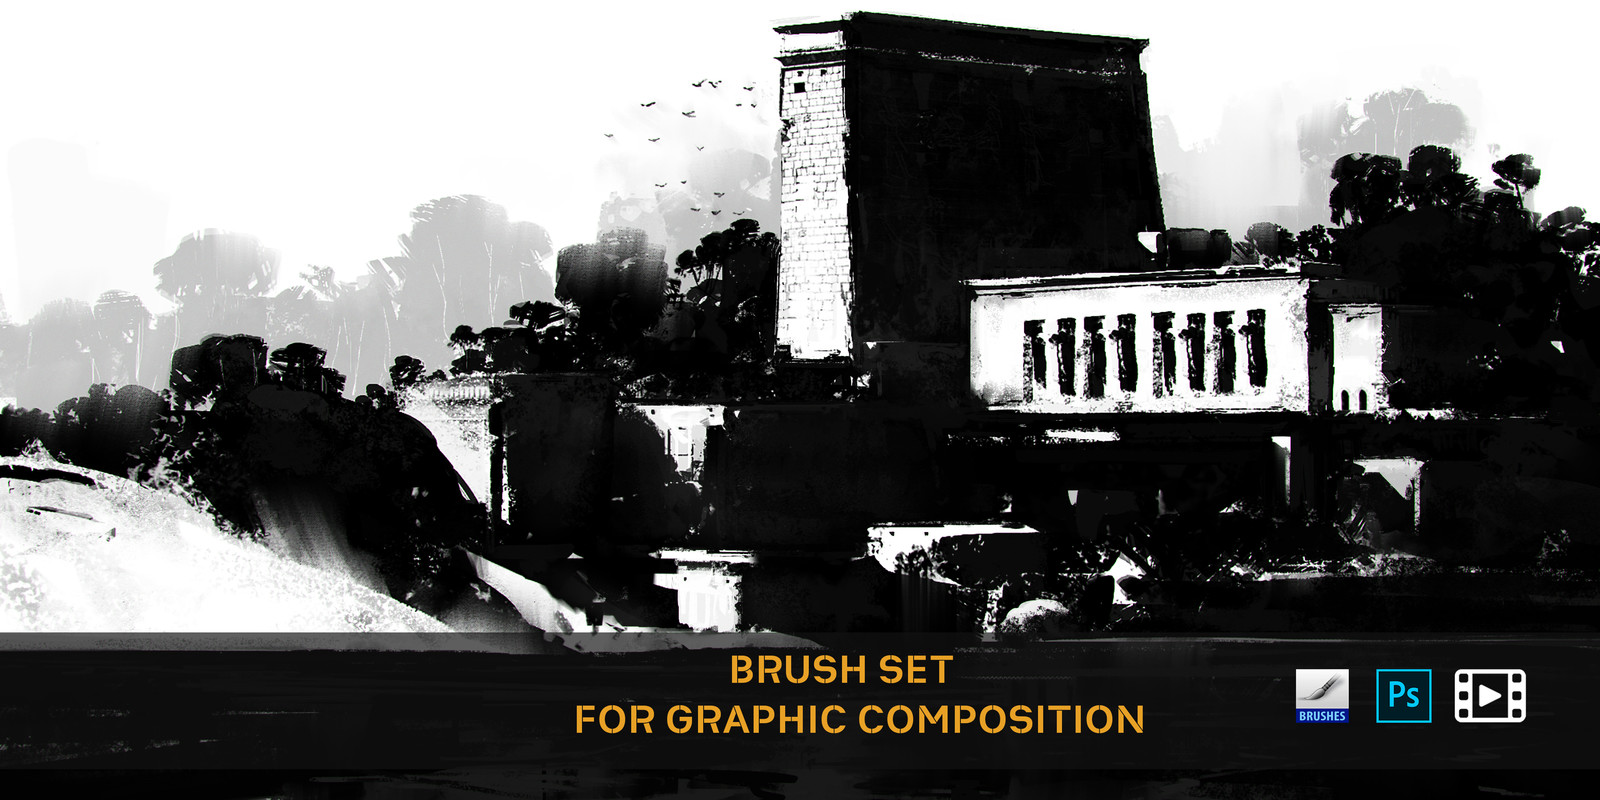 BRUSH SET FOR GRAPHIC COMPOSITION